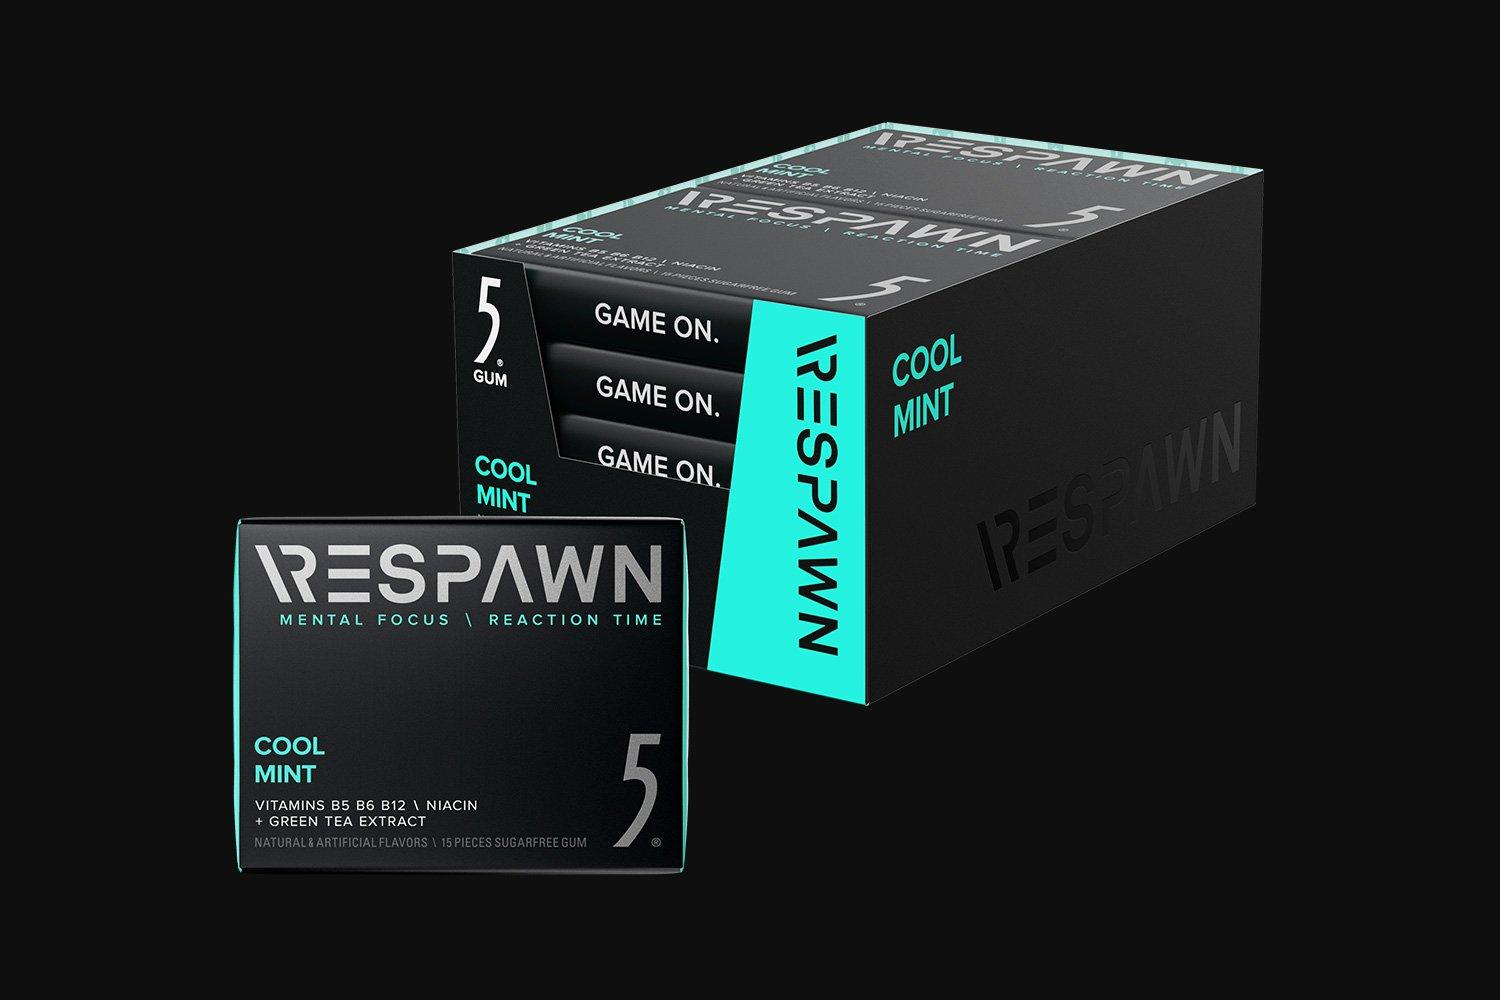 Respawn by 5